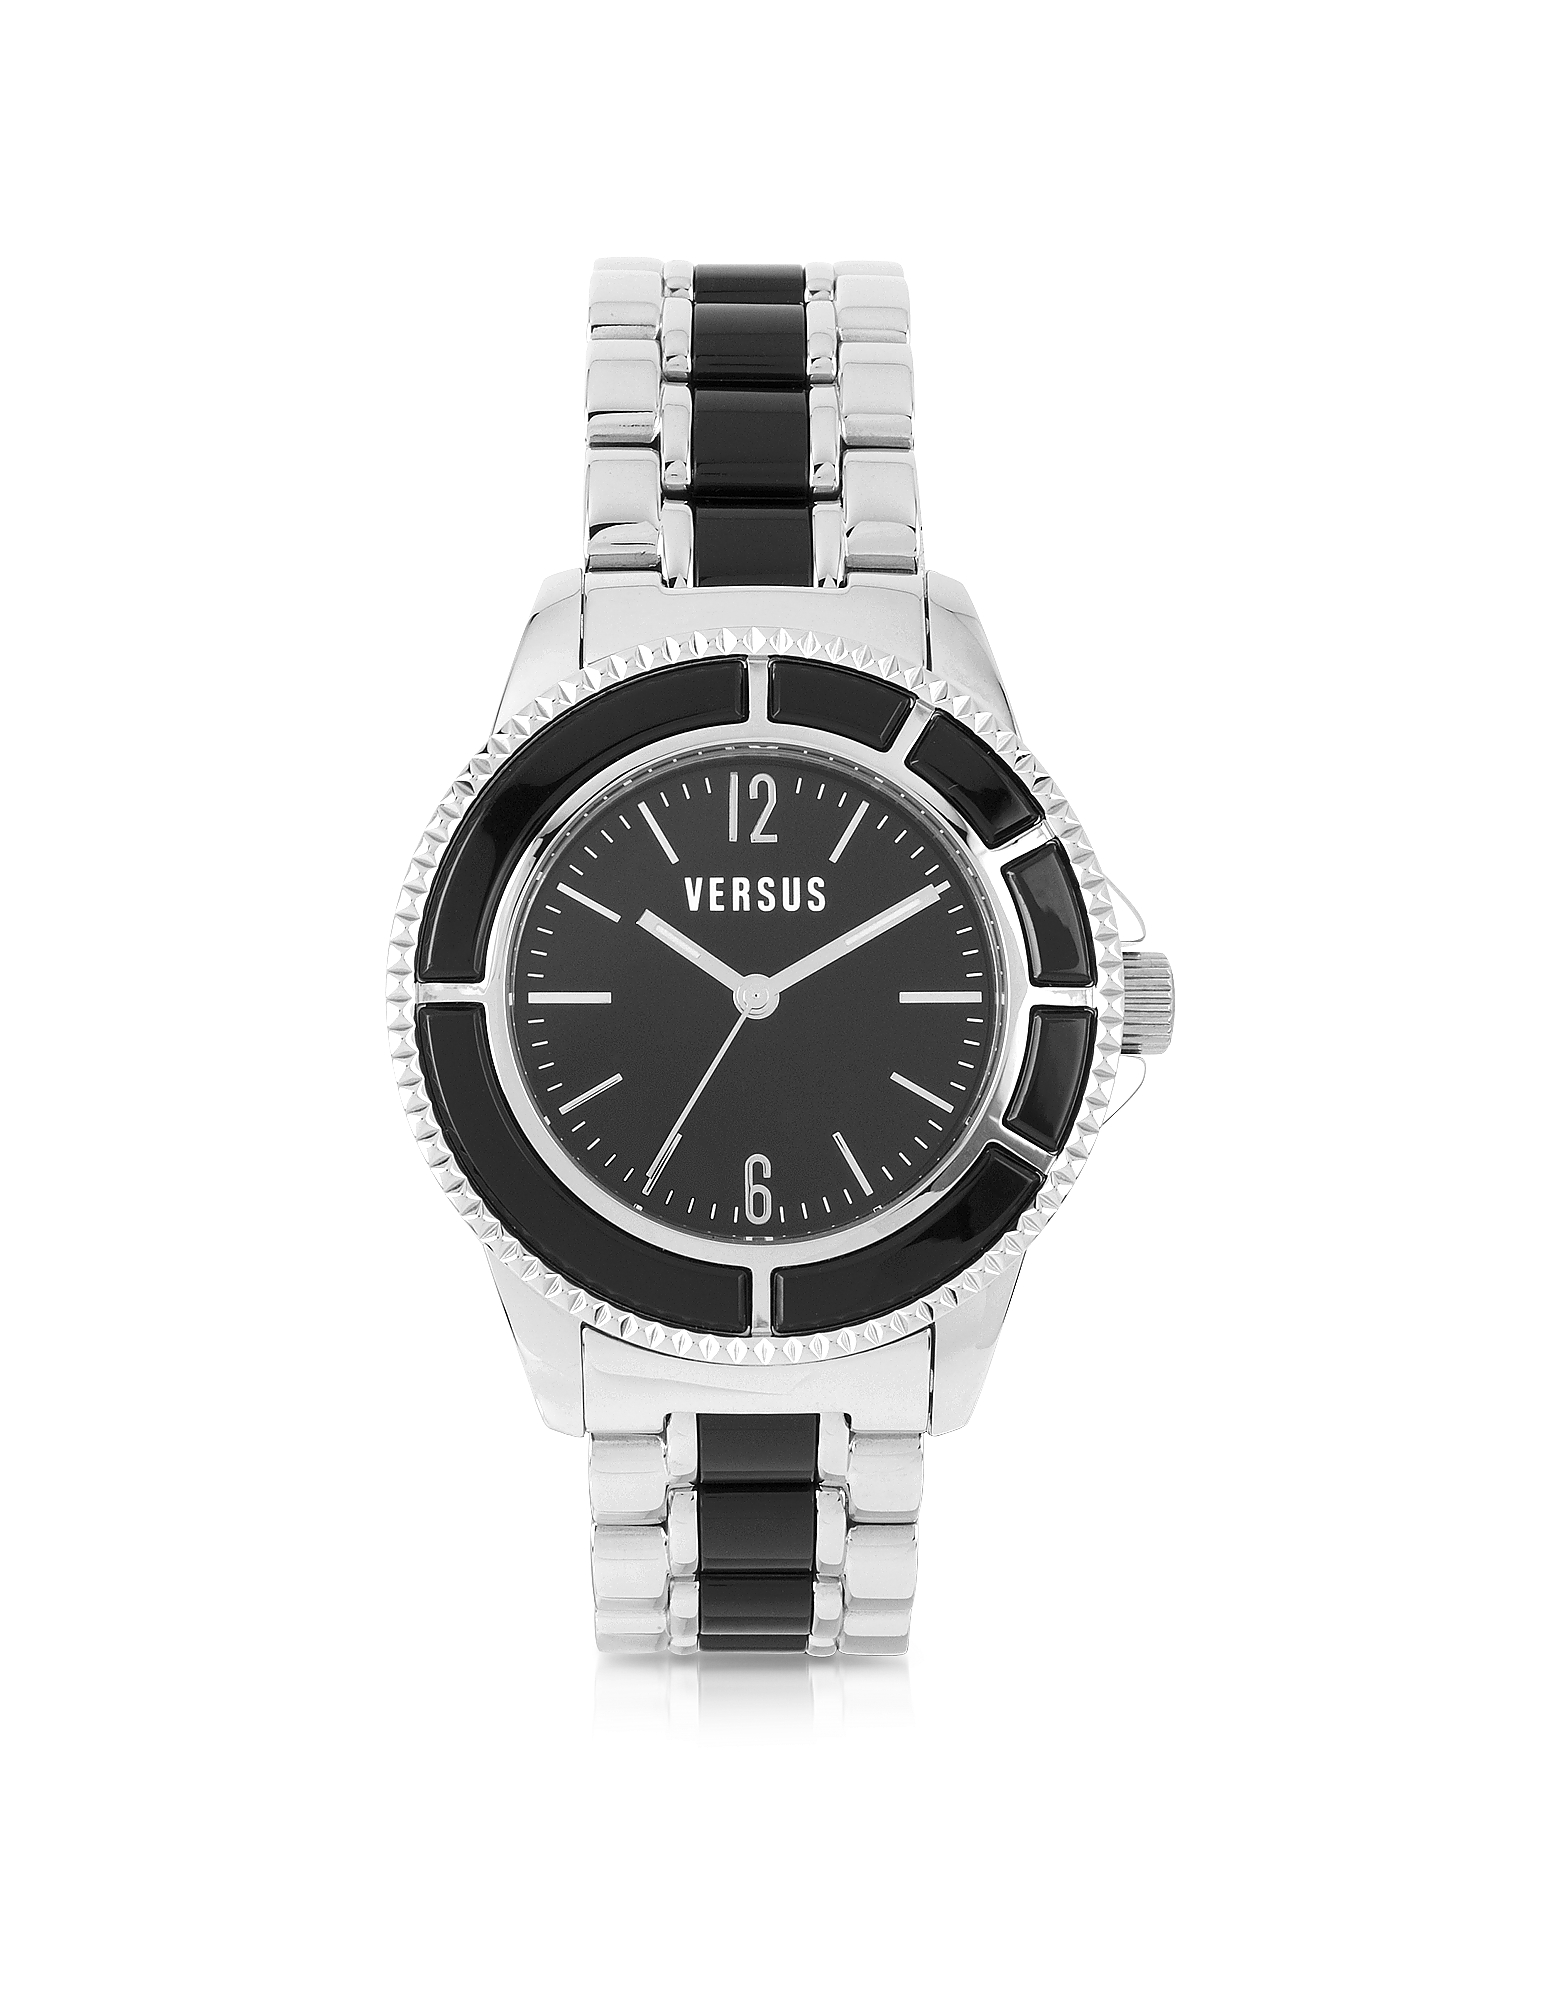 Versace Versus Women's Watches, Tokyo Crystal 42 Stainless Steel and Black Unisex Watch